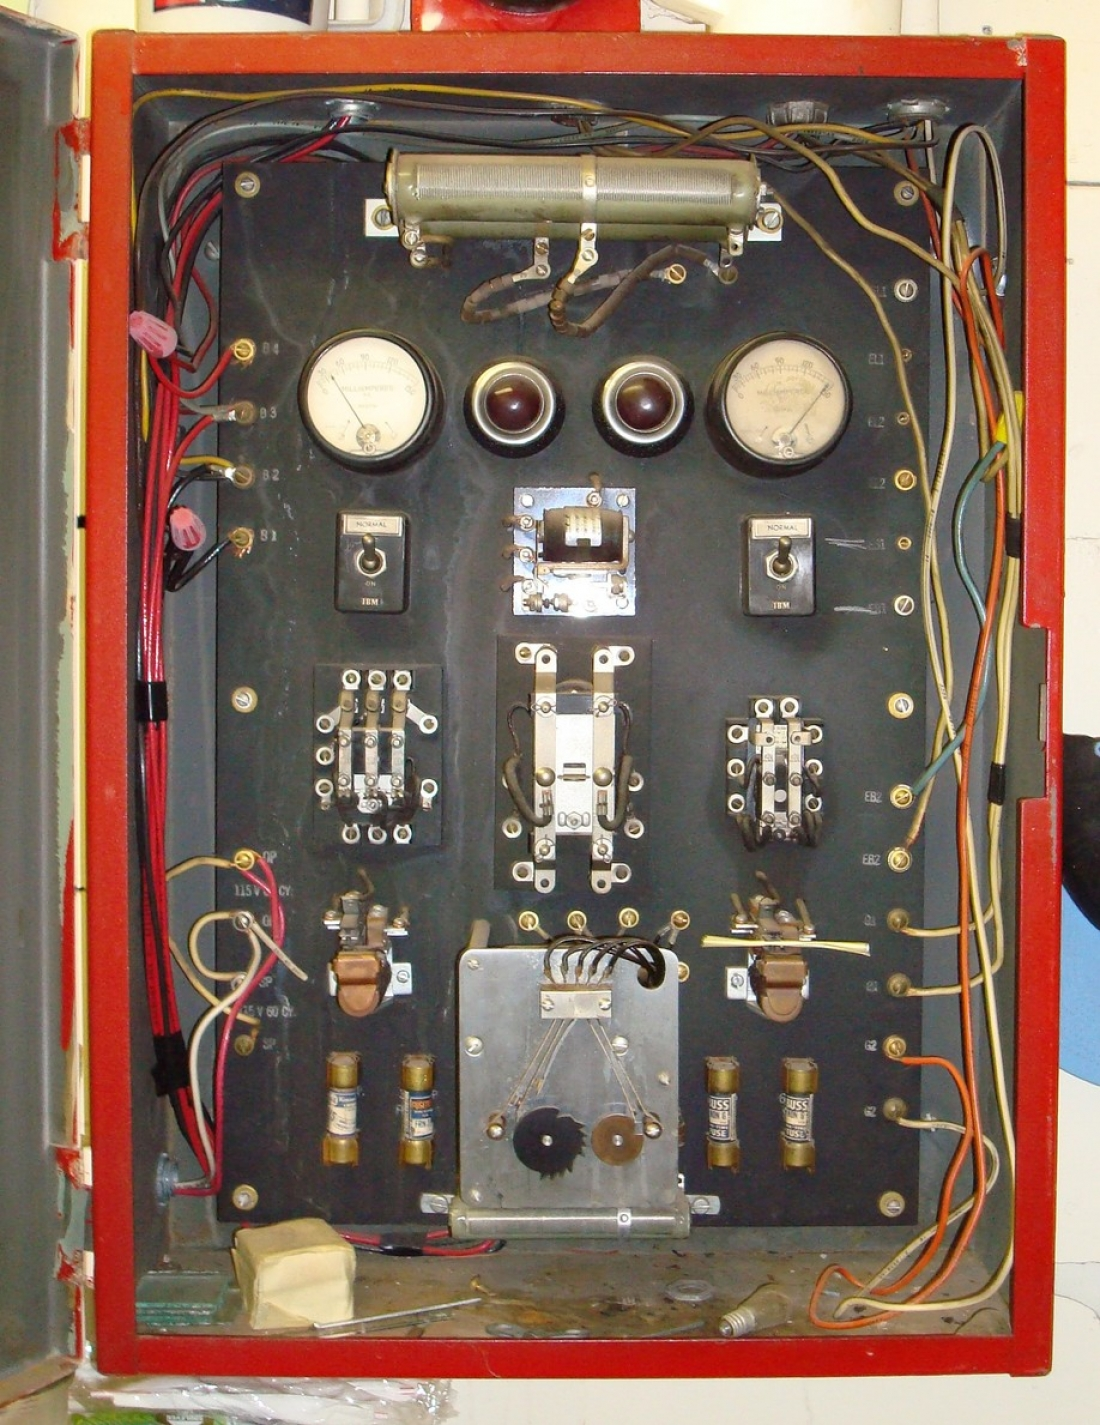 Old School Fire Alarms Alarm Control Panels Wiring A Panel Facp Is Absolutely Essential To Any System Just As The Brain Controls Body